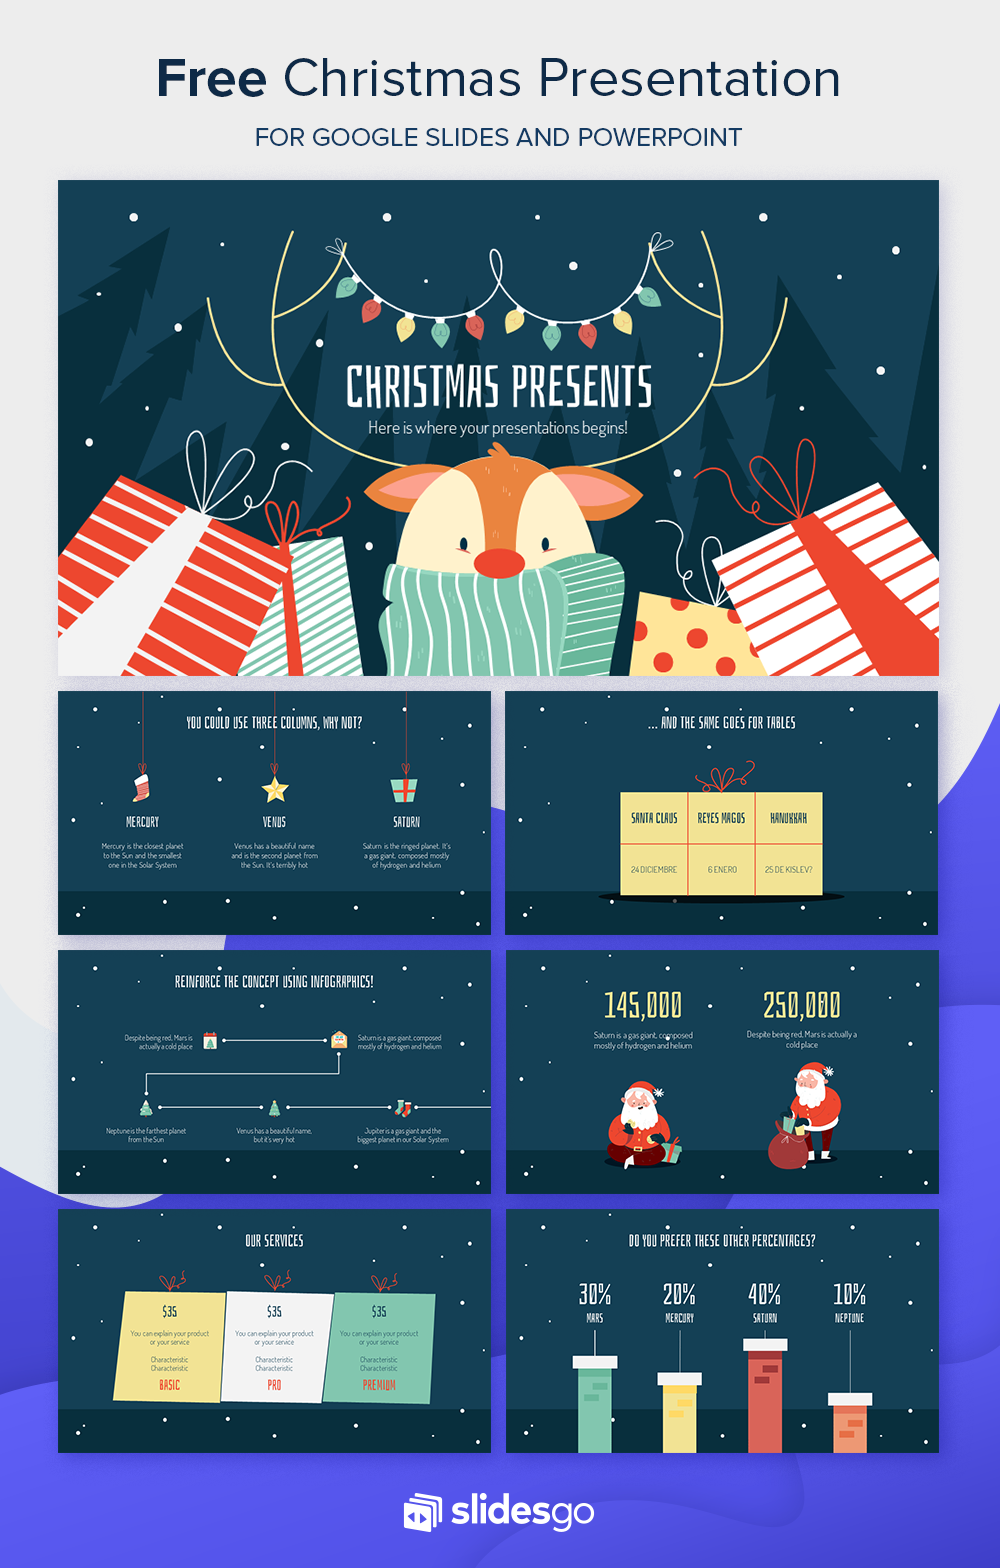 Christmas Presents Presentation Free Google Slides theme